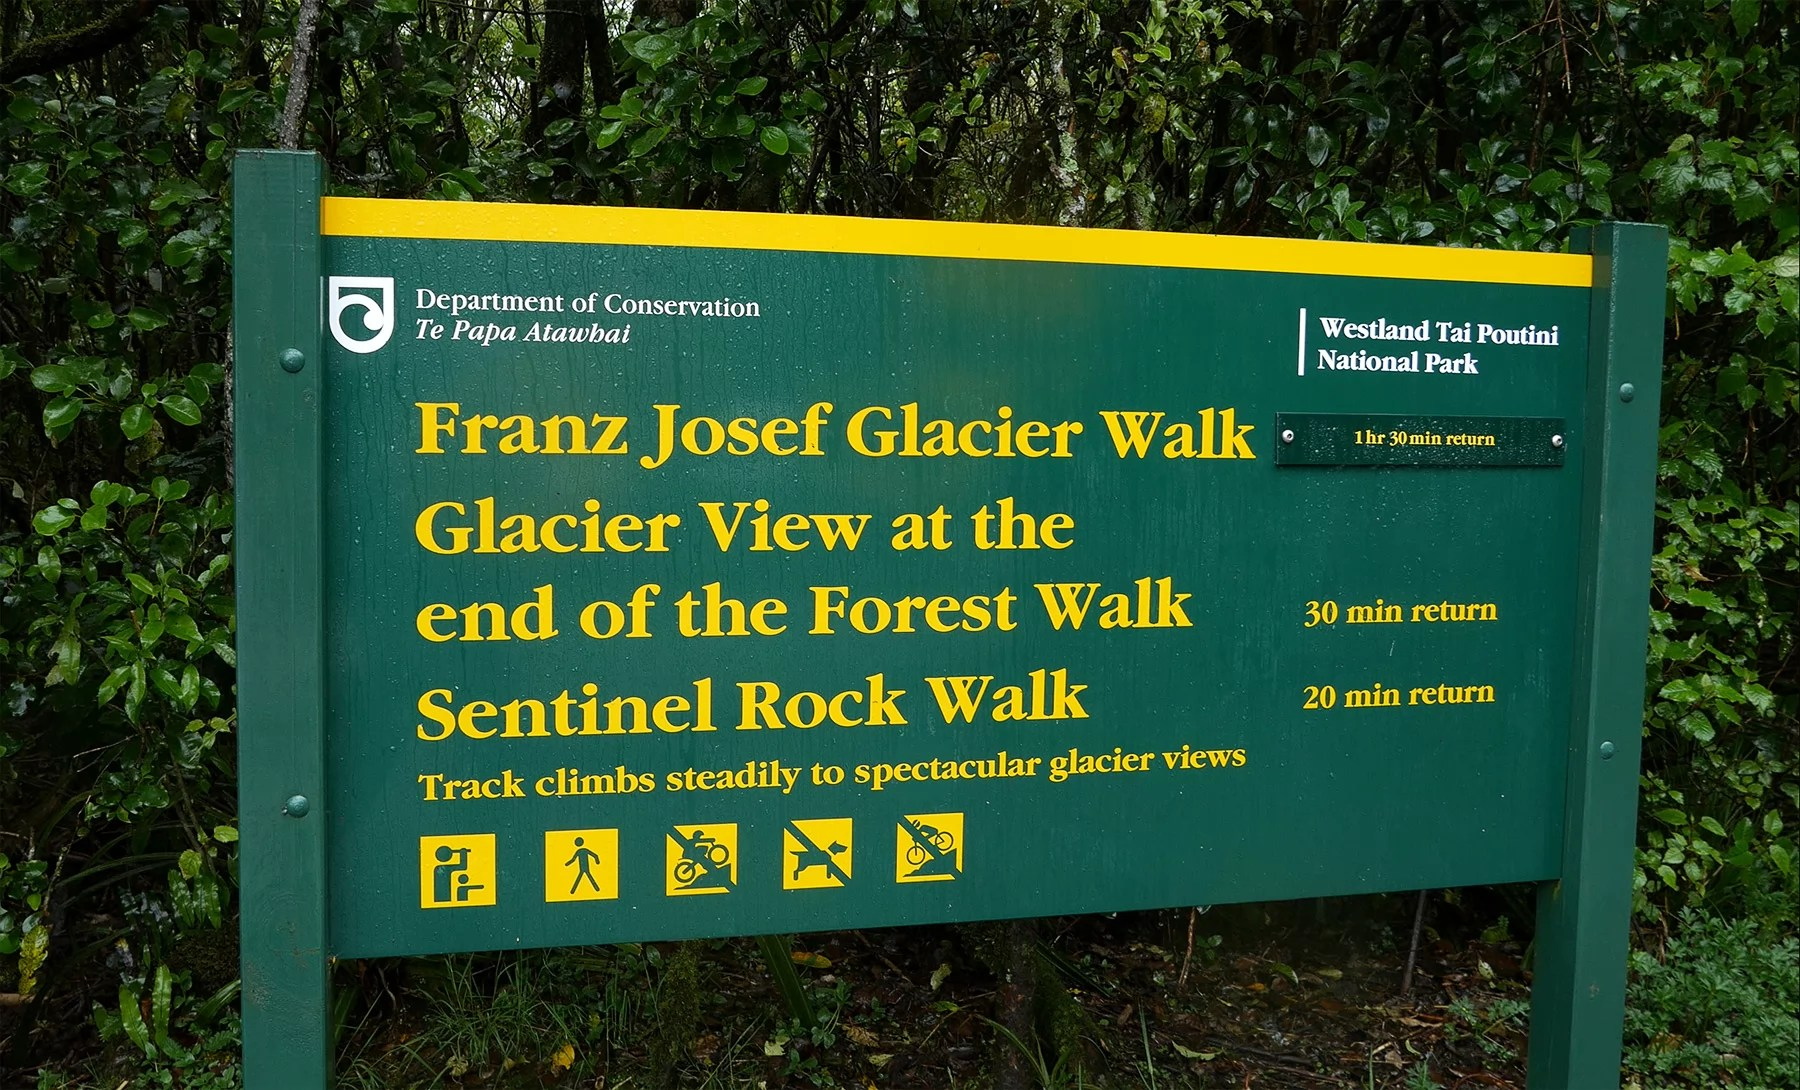 There are a few options for hiking at Franz Josef Glacier